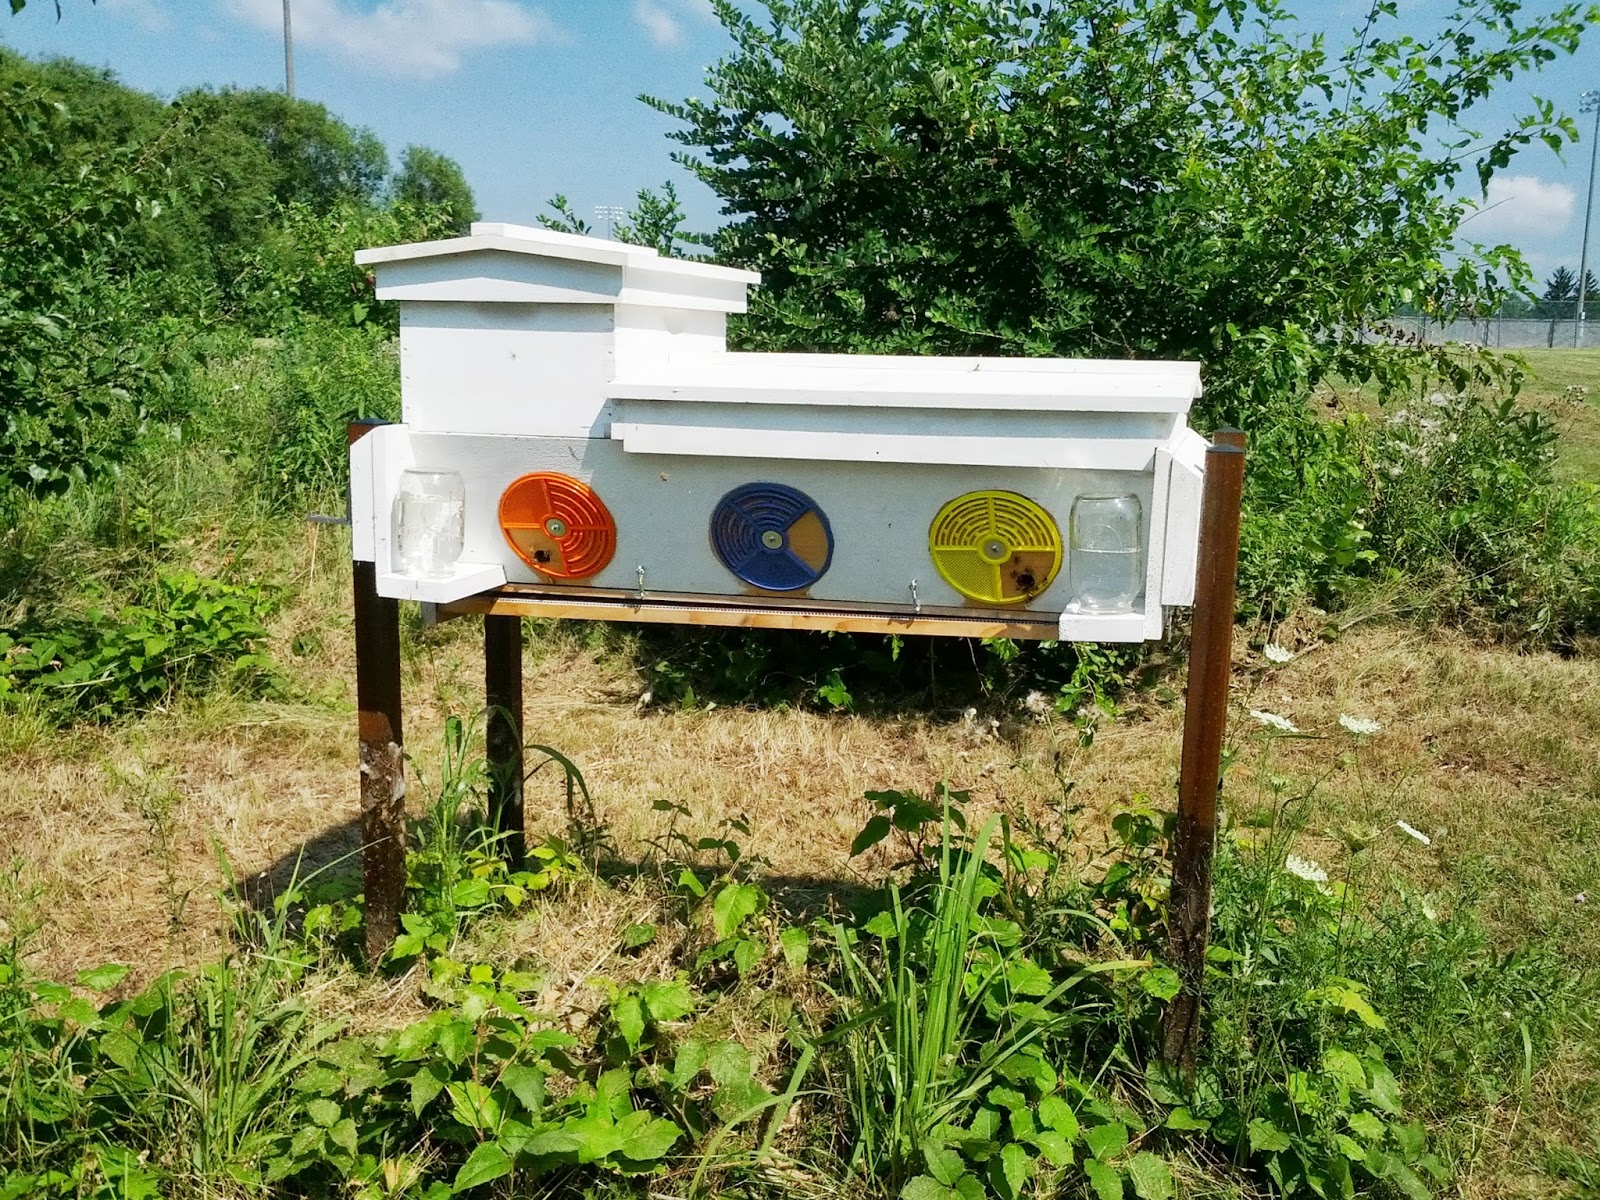 Genial This Is My Thomas Hybrid Hive. It Is Primarily A Top Bar Hive, But With The  Option Of Langstroth Frames In The Top Super. All The Wood It Is Made From  Has ...